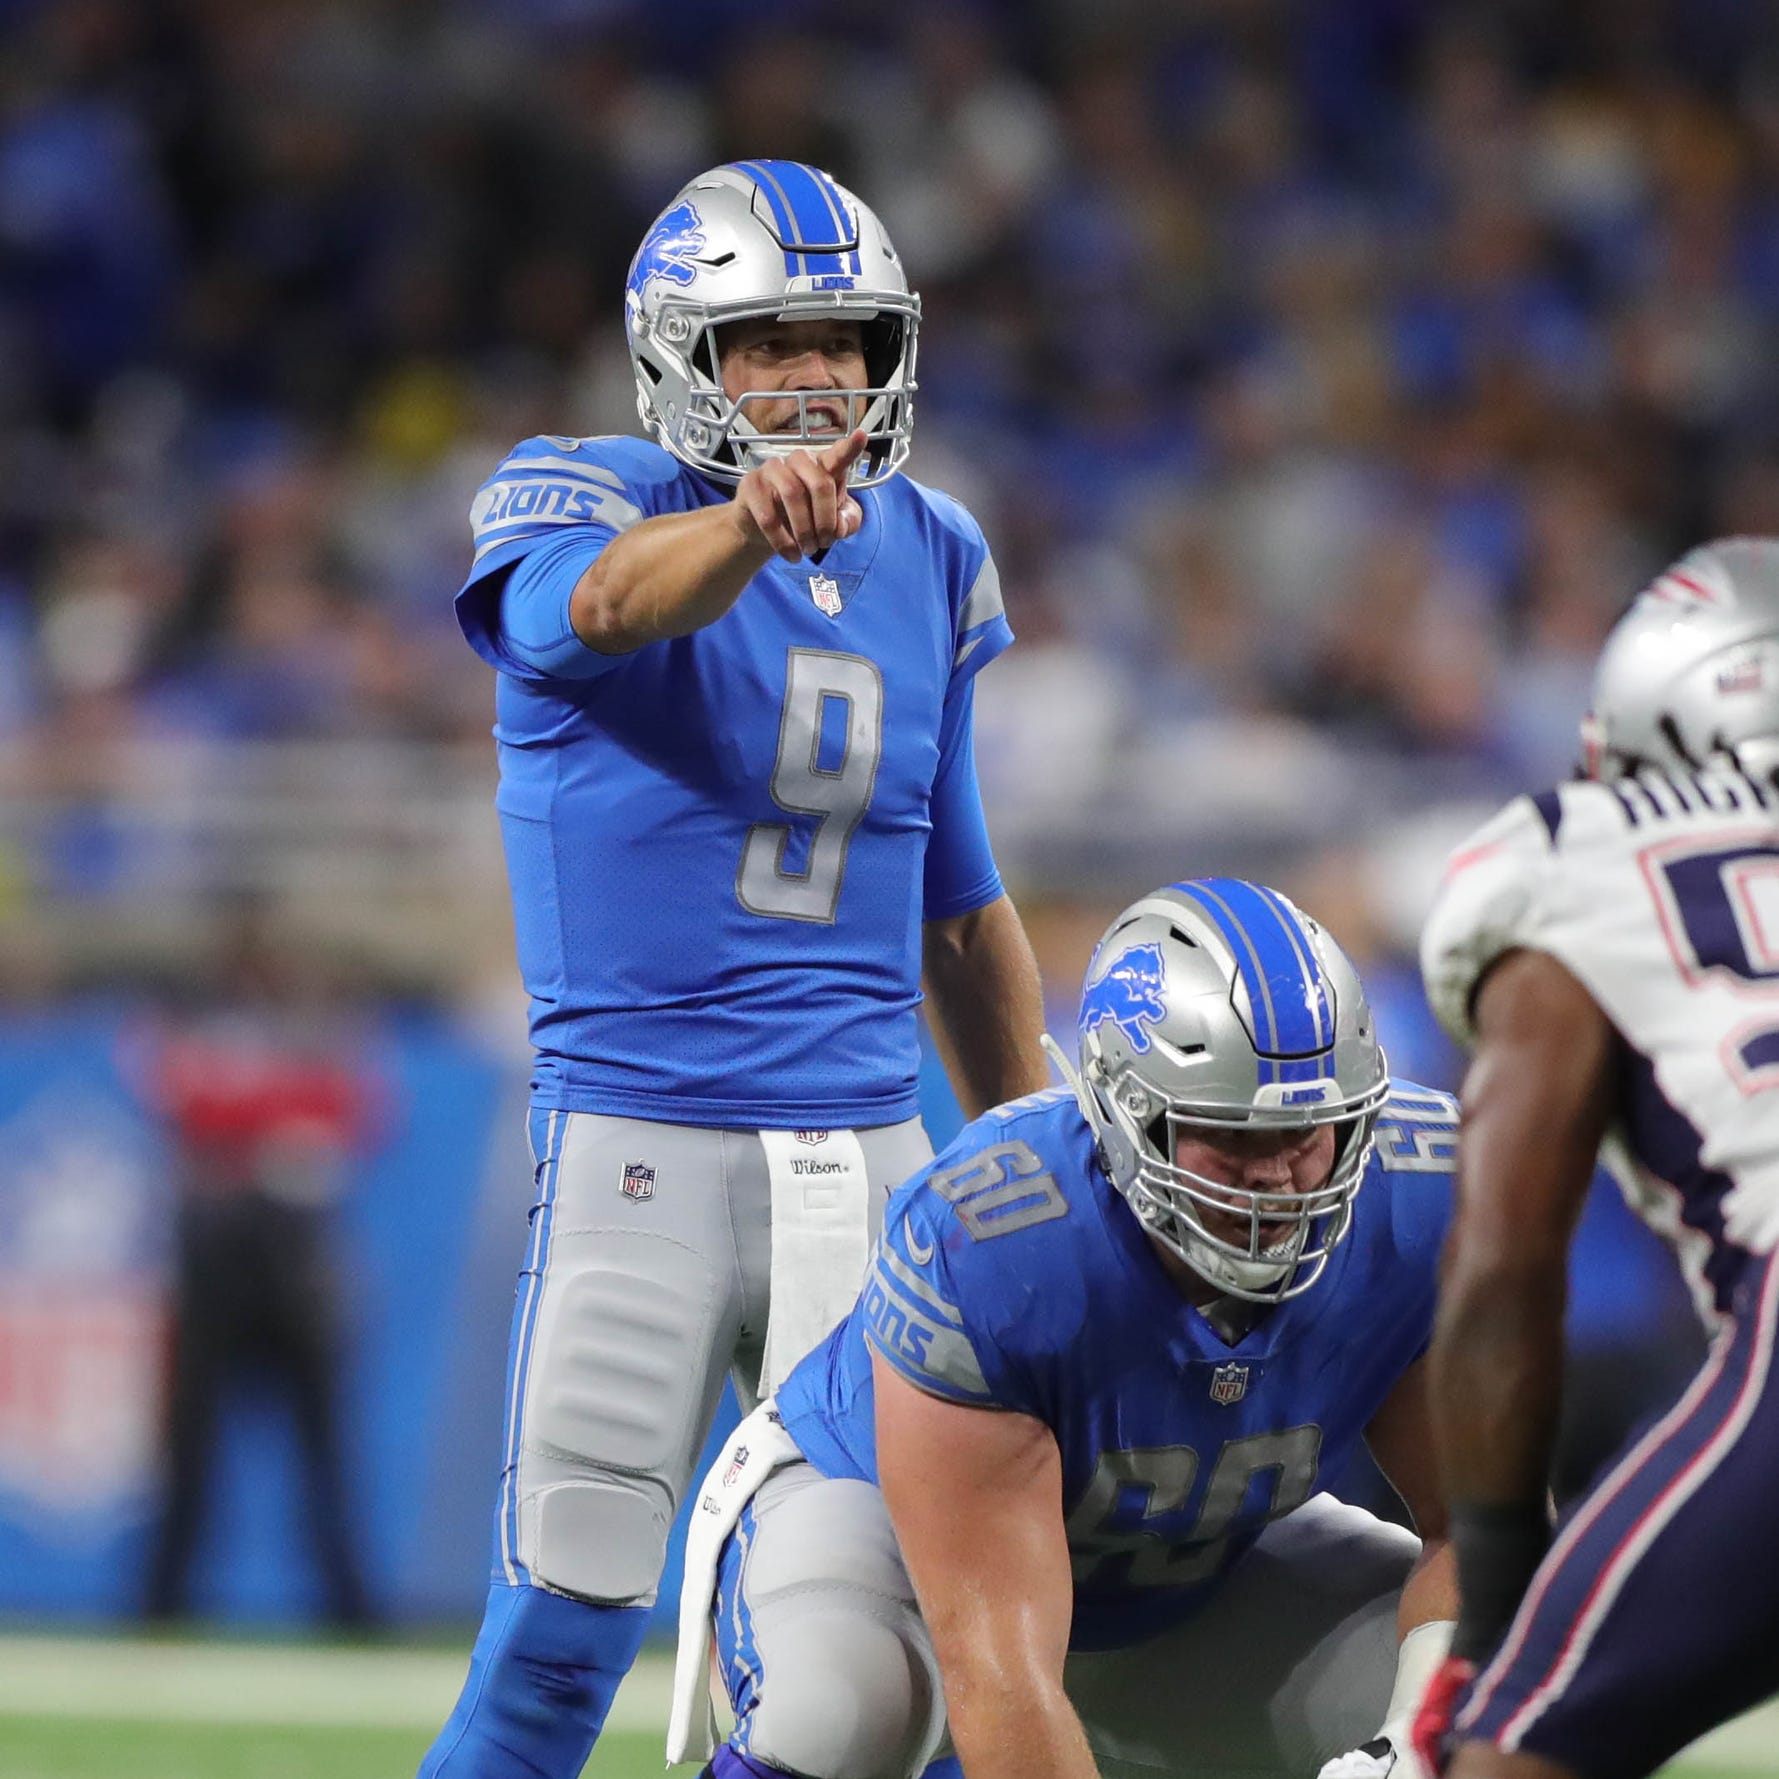 Detroit Lions' rare dominating win was special and rekindles hope